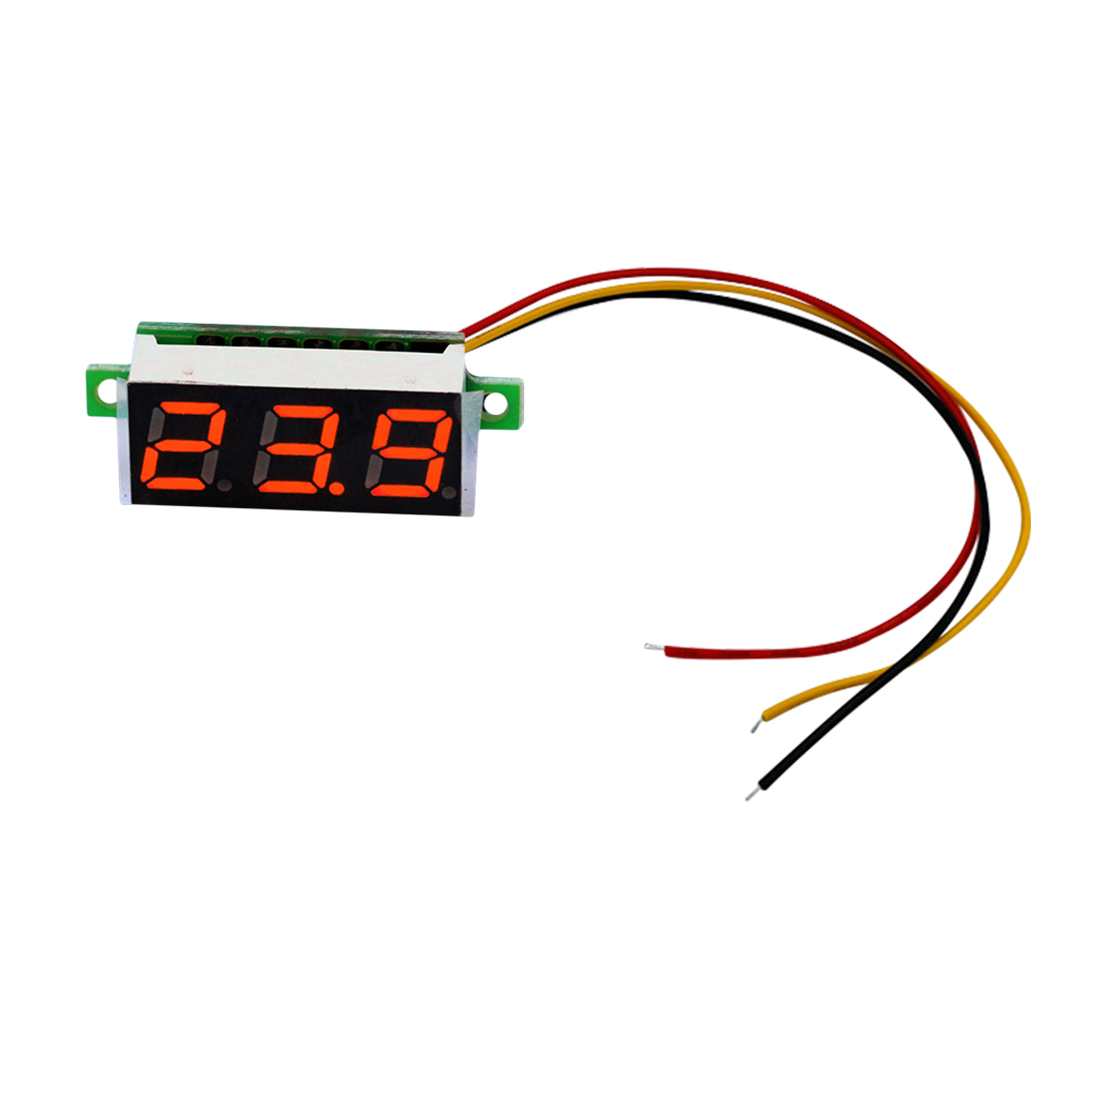 Mini 0.36 inch DC 0-100V 3 bits Digital Red LED Display Panel Voltage Meter Voltmeter Tester mini voltmeter tester digital voltage test battery dc 0 30v red blue green auto car